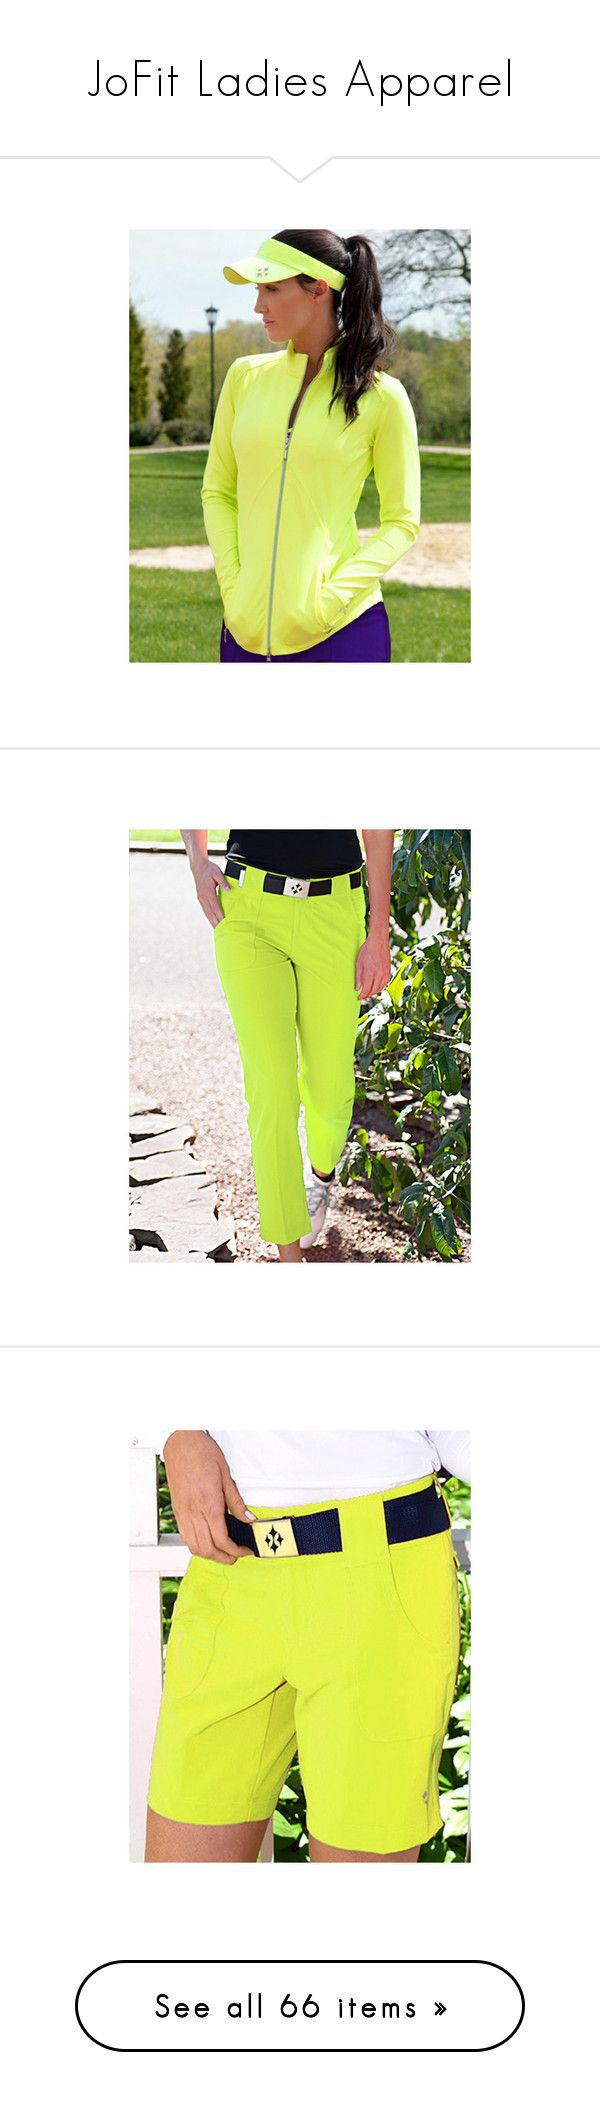 """JoFit Ladies Apparel"" by lorisgolfshoppe ❤ liked on Polyvore featuring pants, capris, green trousers, cropped pants, cropped trousers, green crop pants, cropped capri pants, golf shirts, womens plus size tank tops and women's plus size tops"